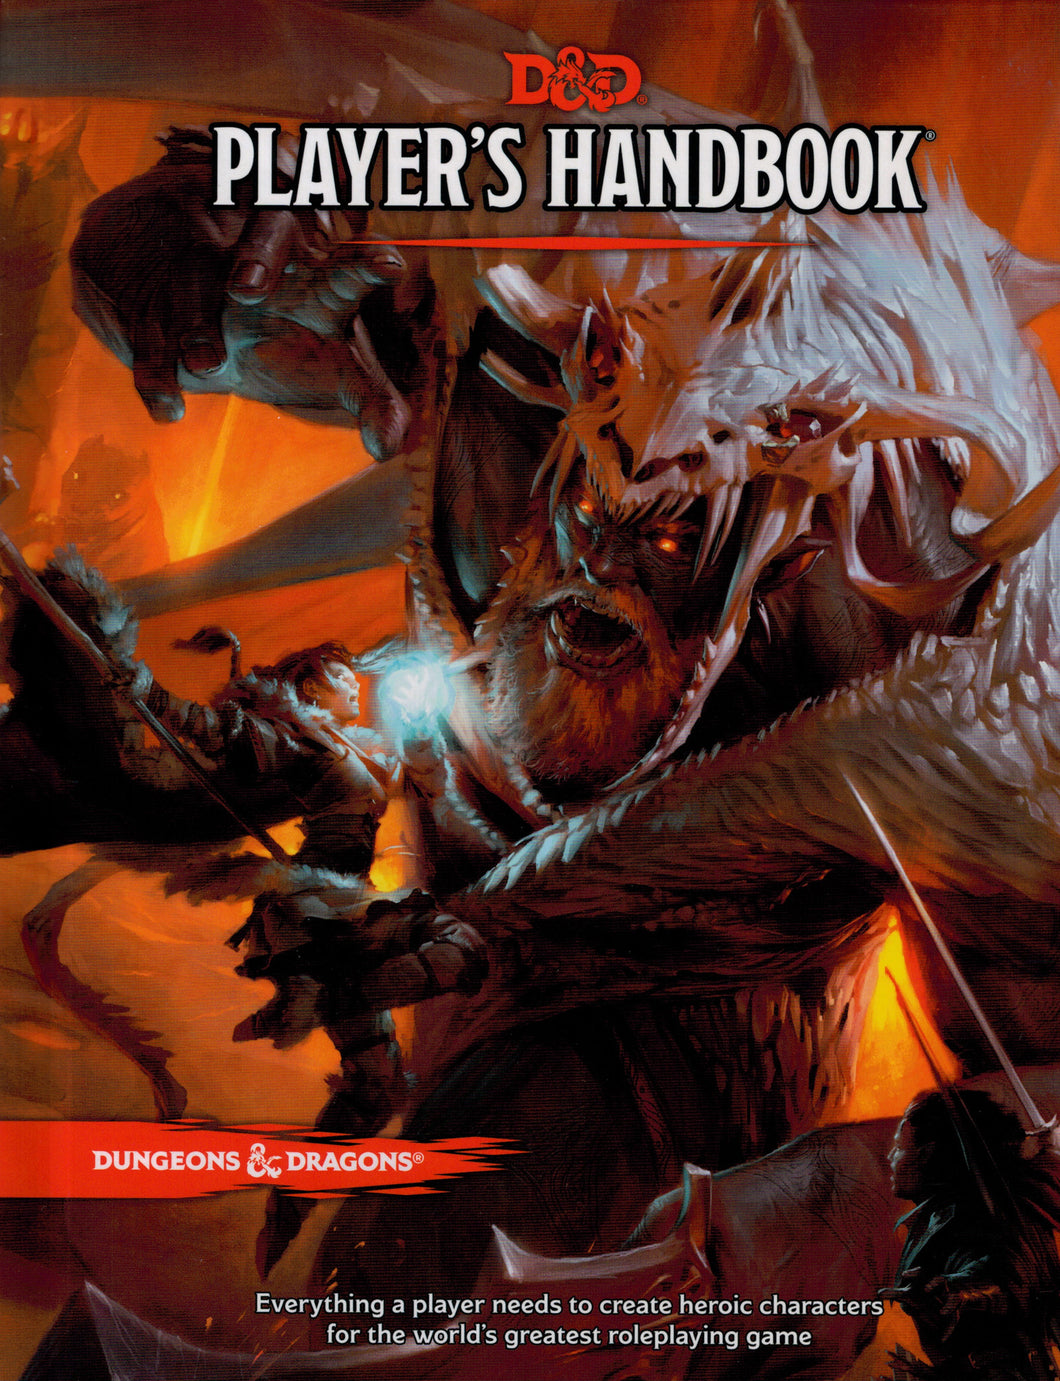 Dungeons & Dragons D&D Player's Handbook